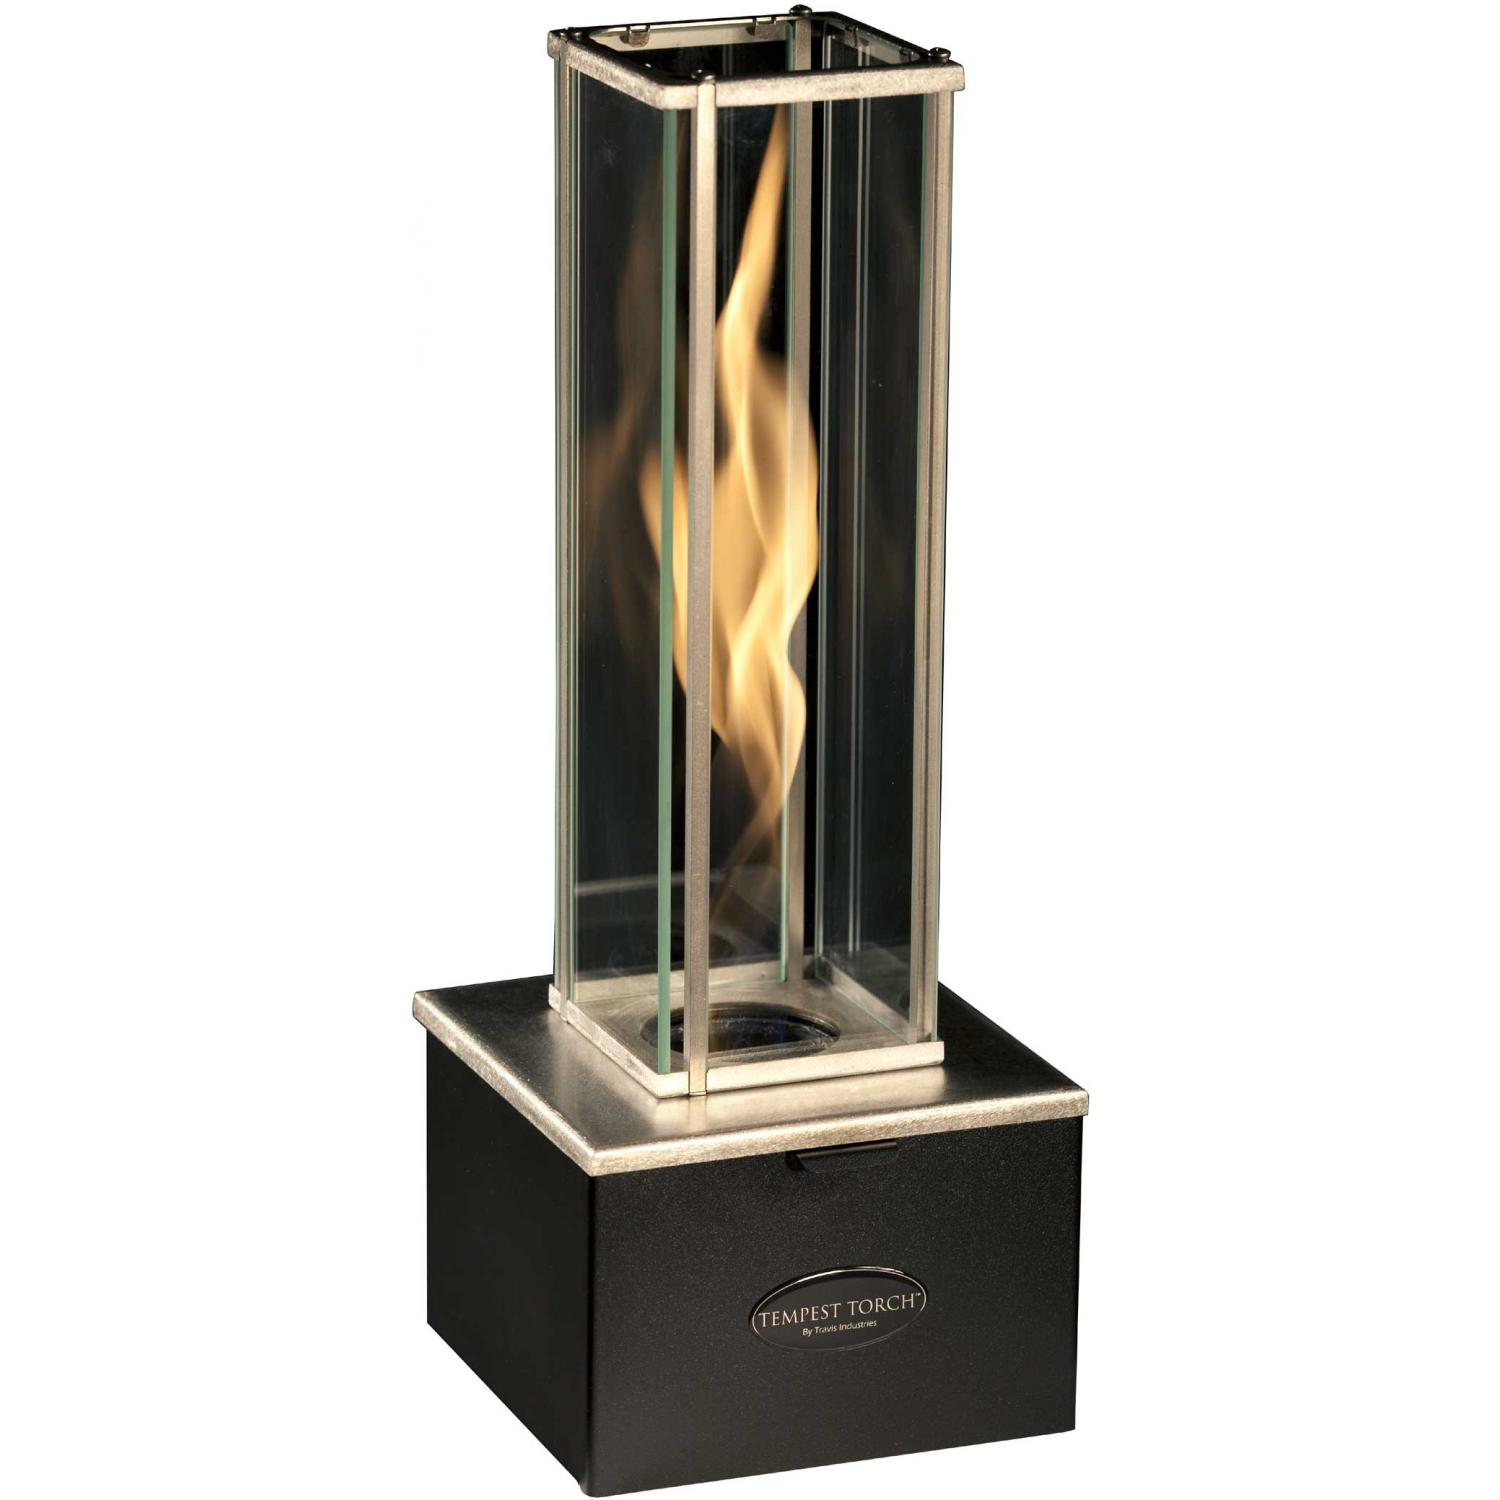 Tempest Torch Indoor/Outdoor Table Top Torch